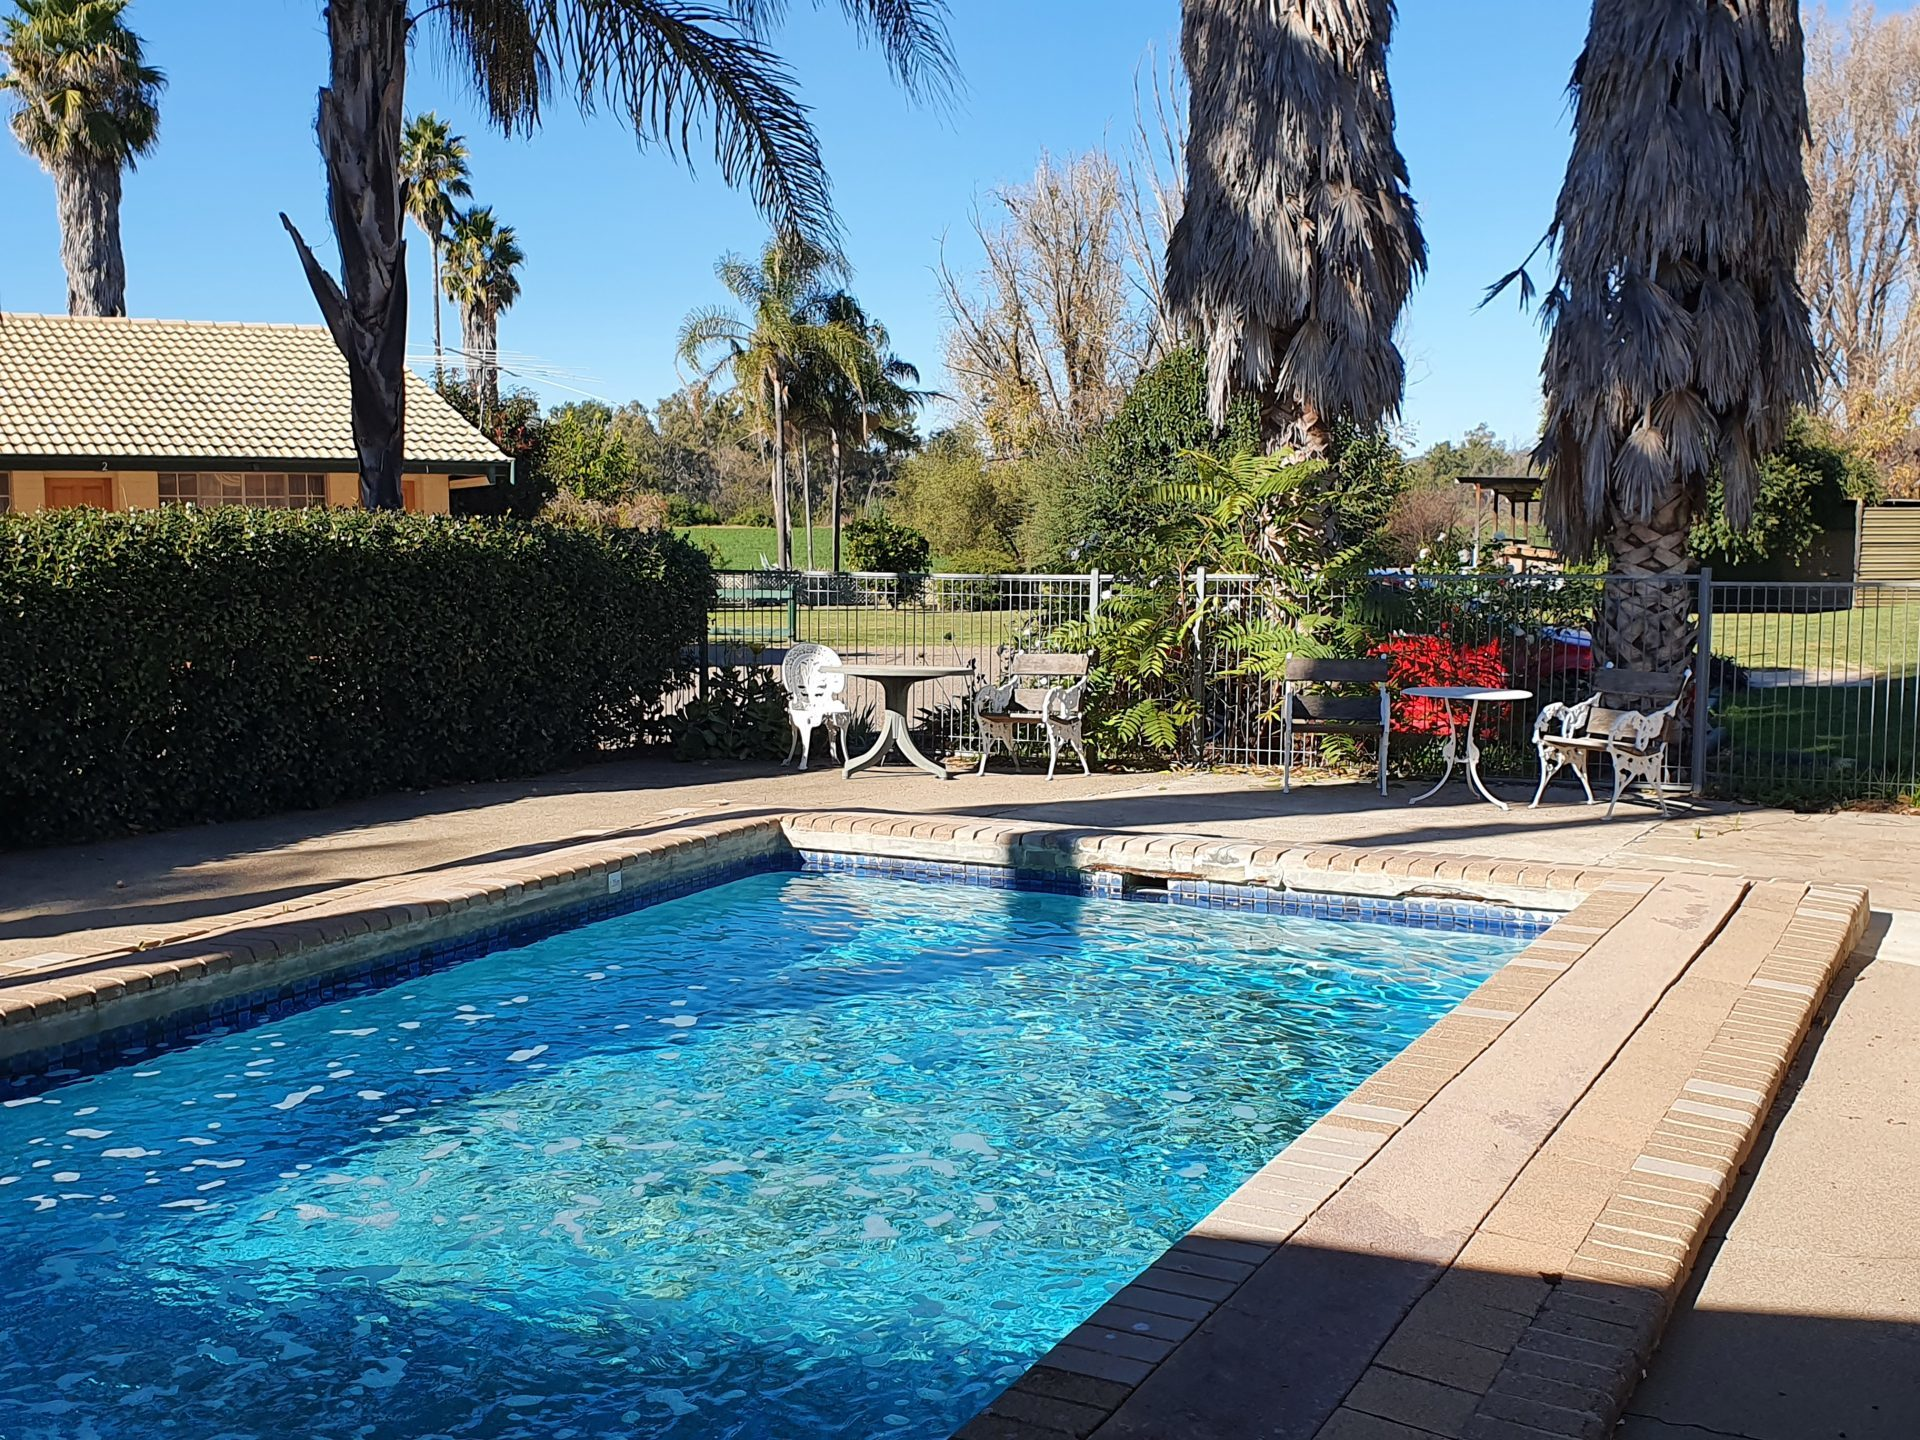 Tamworth accommodation images swimming pool at McNevins MotelM